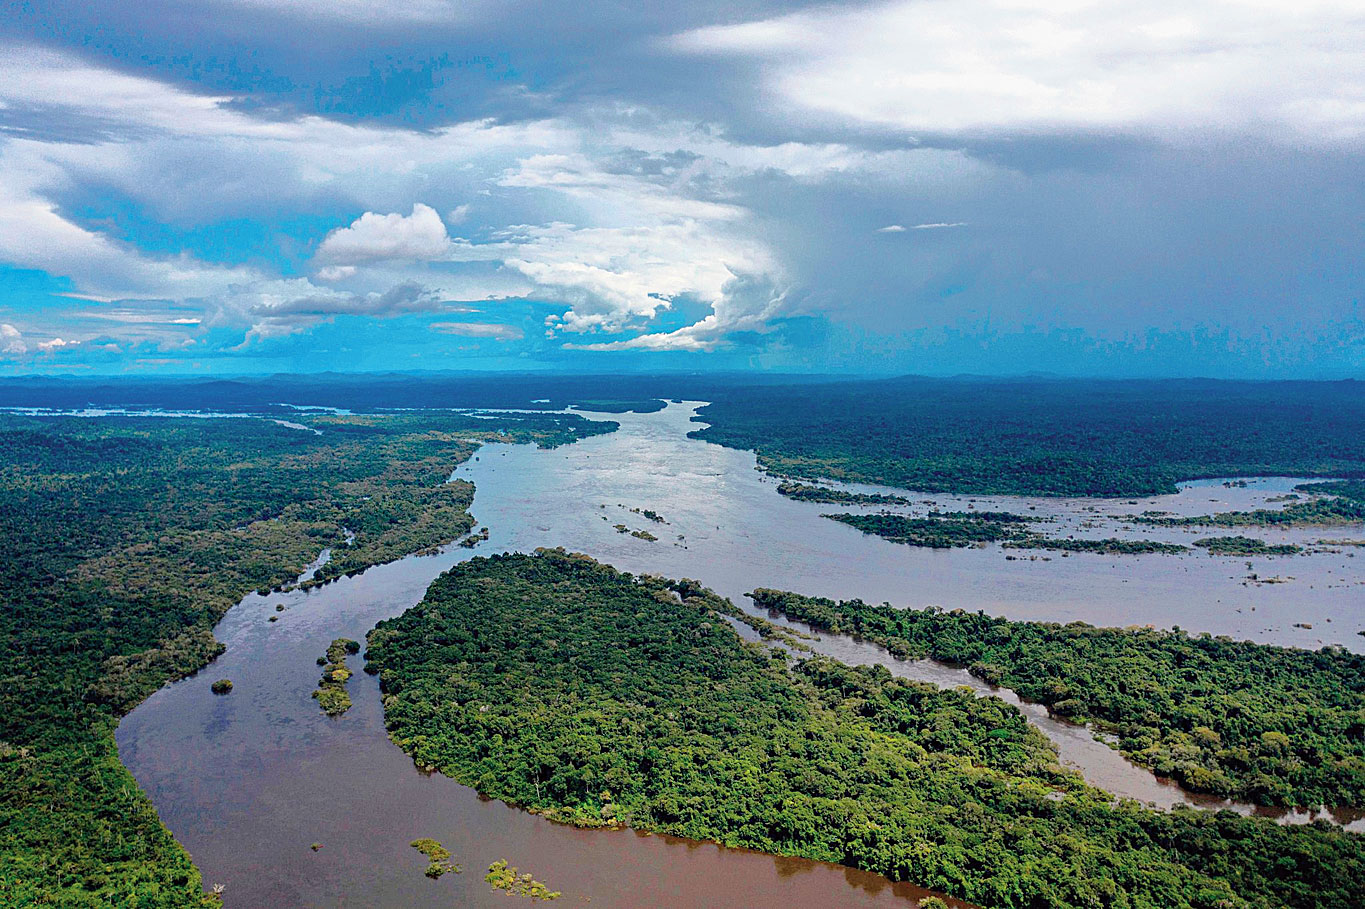 The Amazon rain forest in Para State, Brazil.